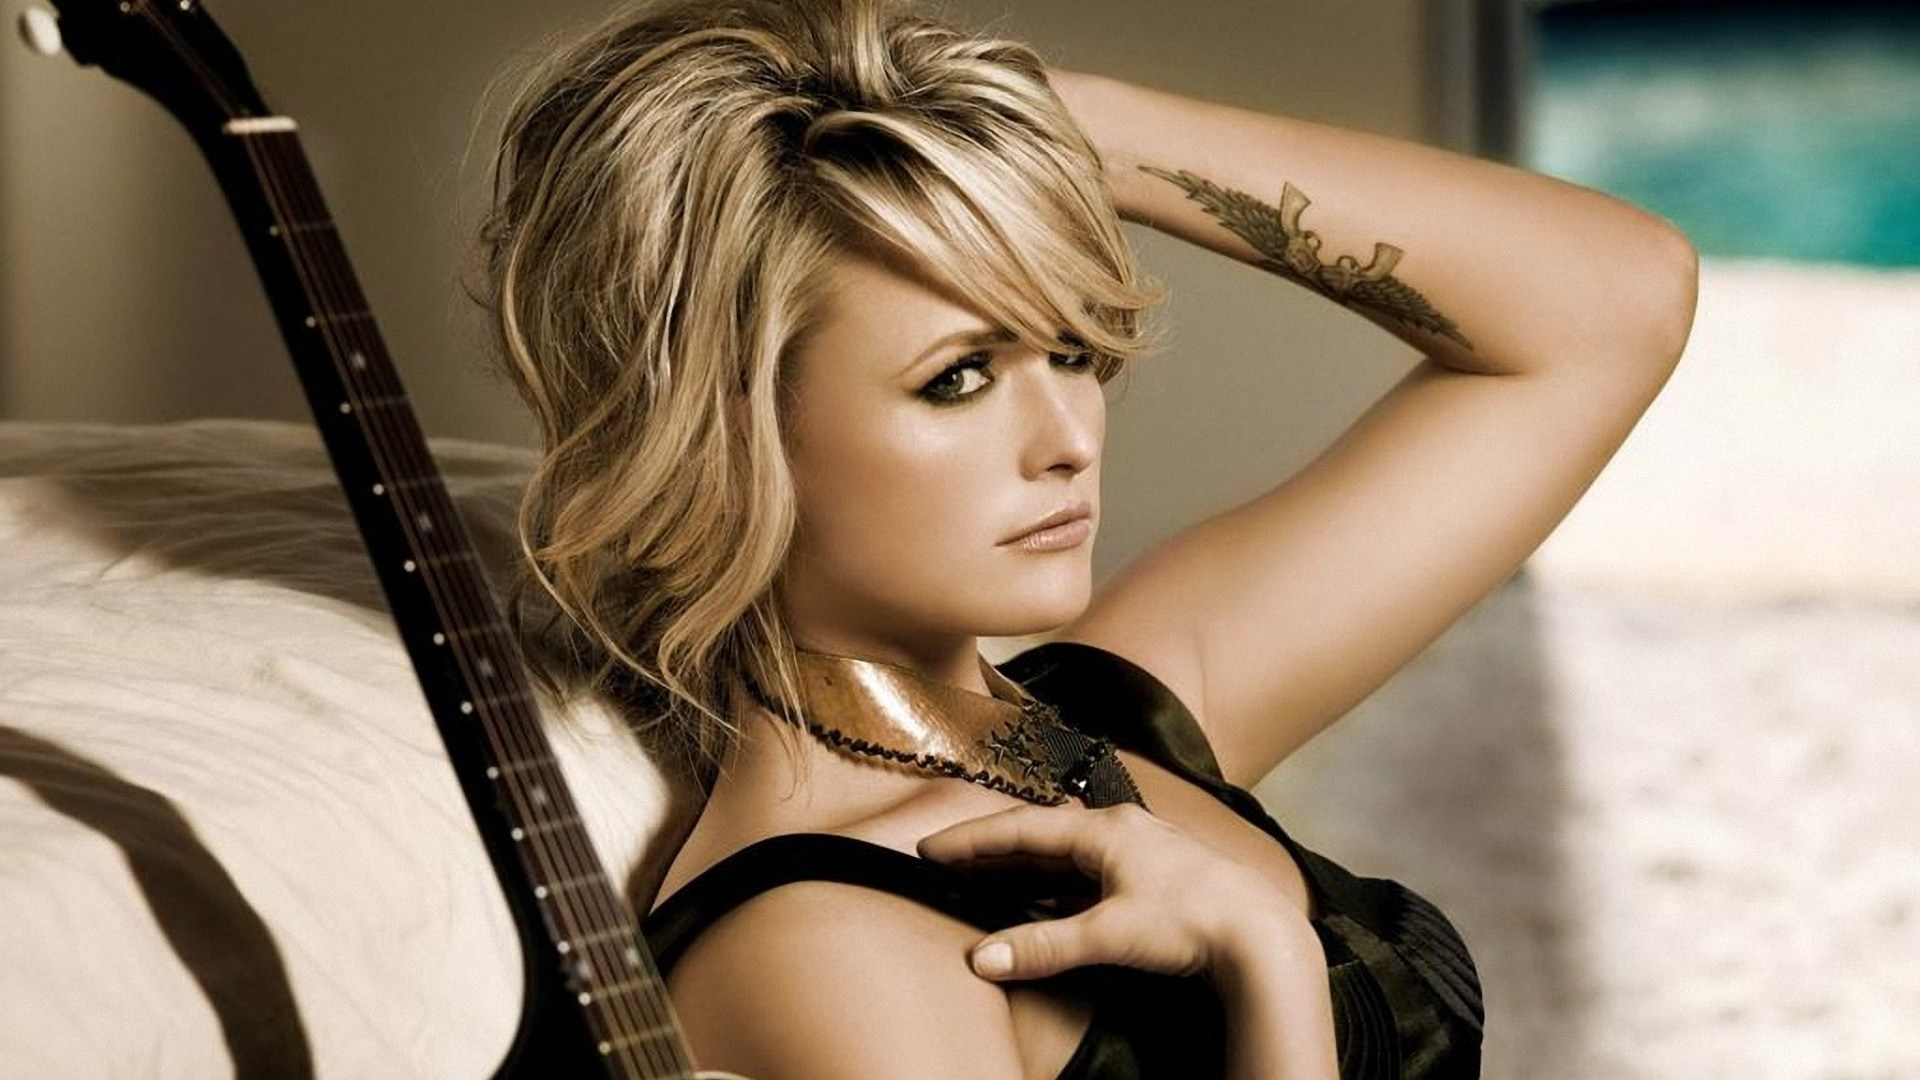 miranda lambert full hd wallpaper and background image | 1920x1080